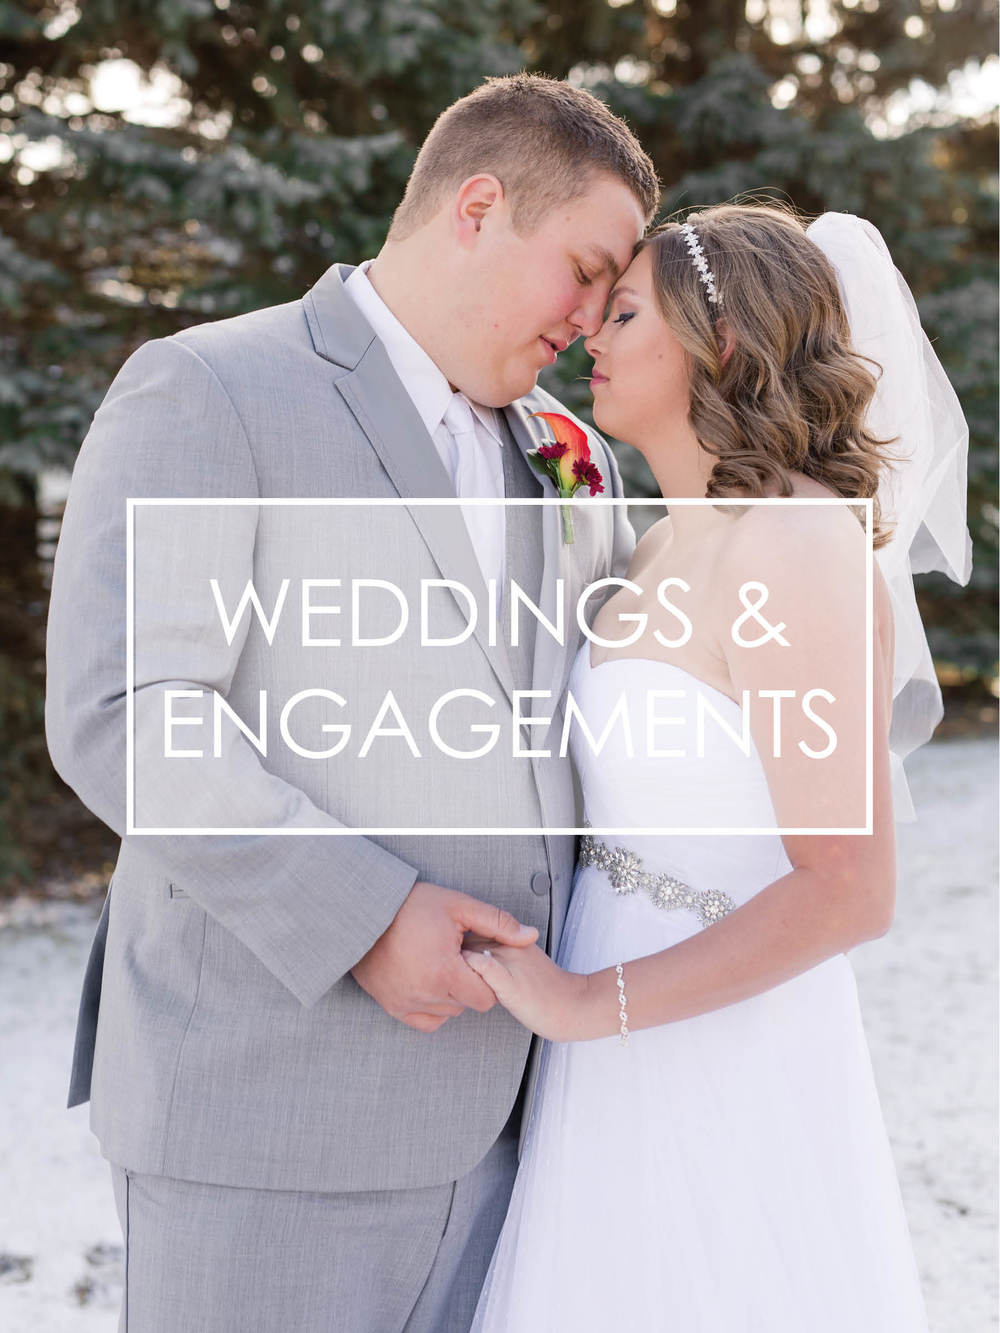 Weddings/Engagements